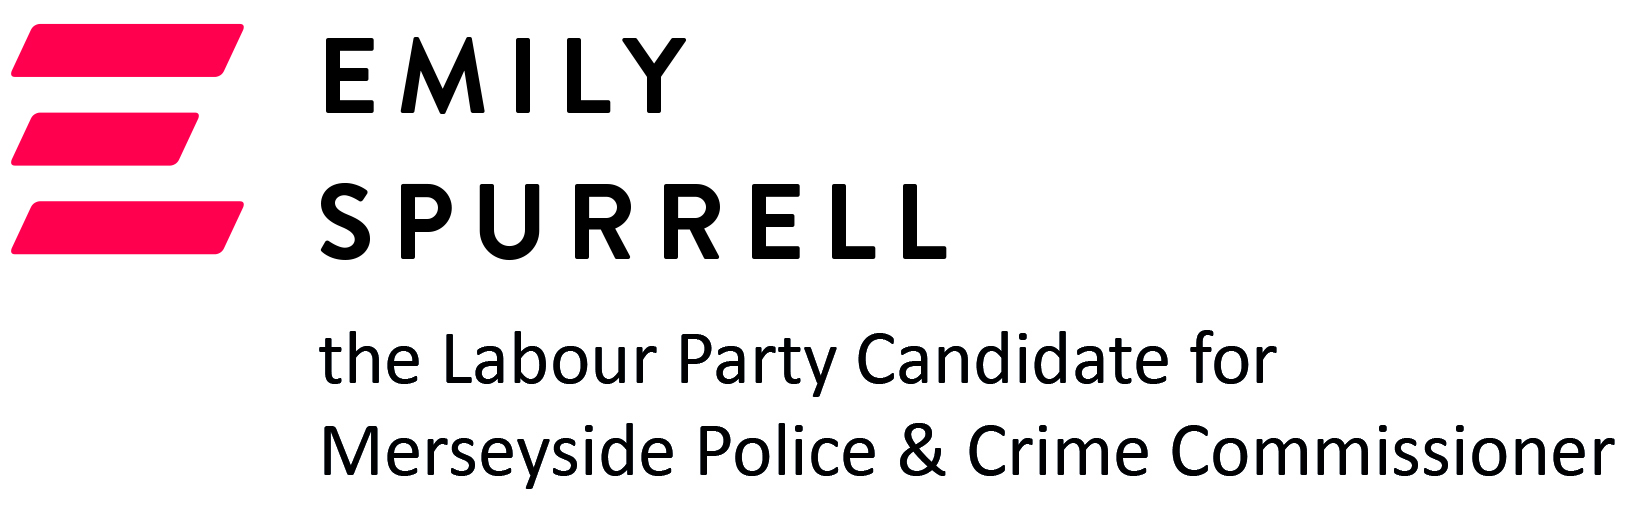 Emily Spurrell the Labour Party Candidate for Merseyside Police and Crime Commissioner